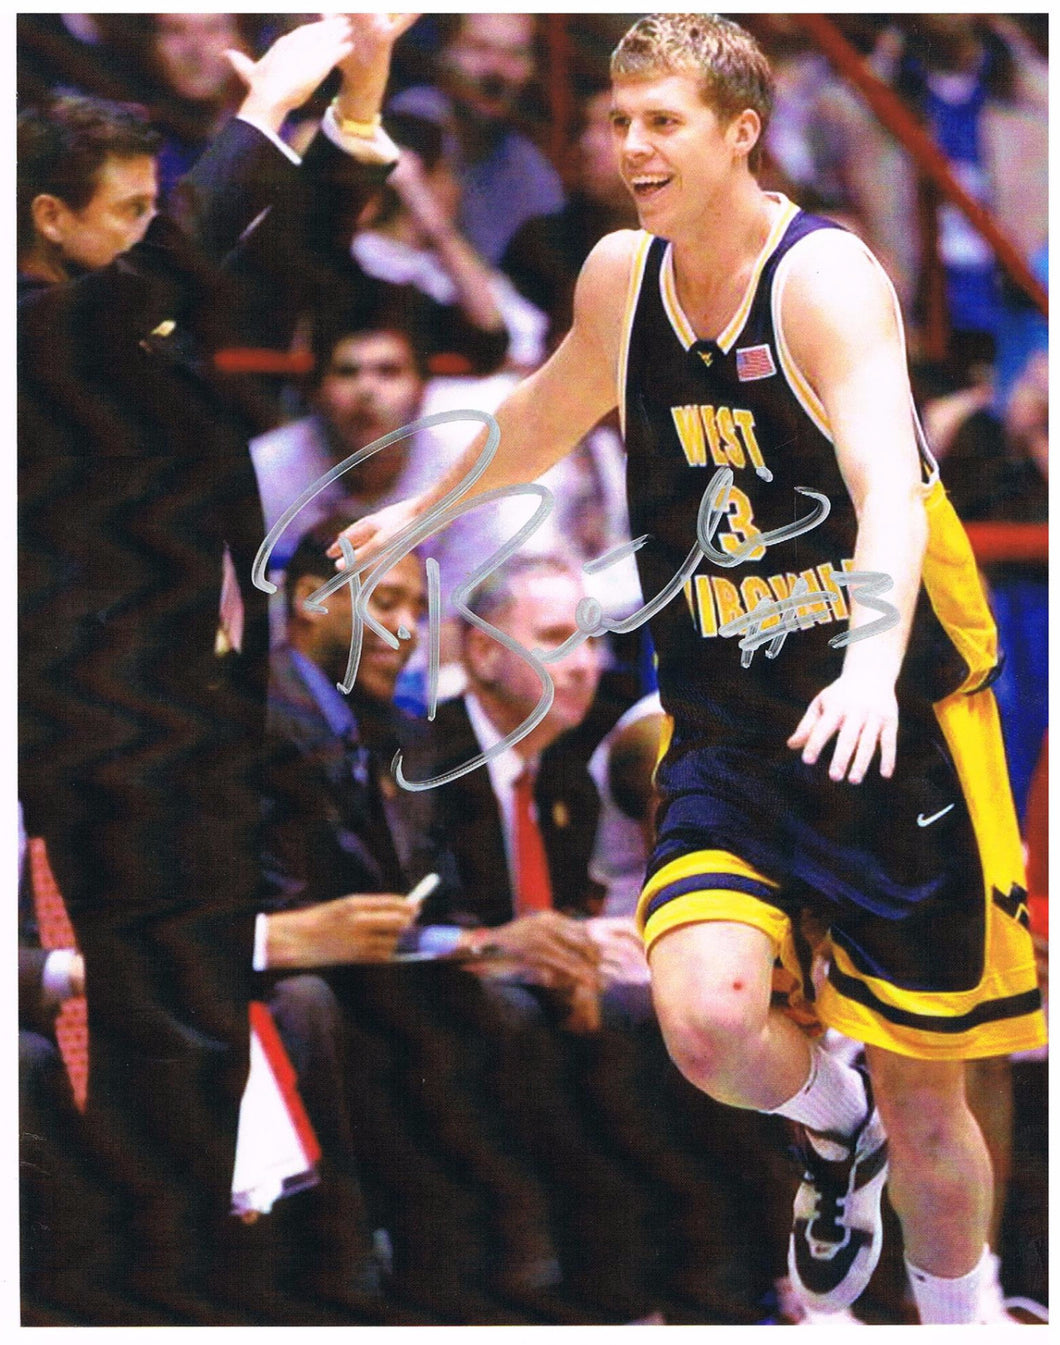 Pat Beilein West Virginia Mountaineers Signed 8x10 Photo